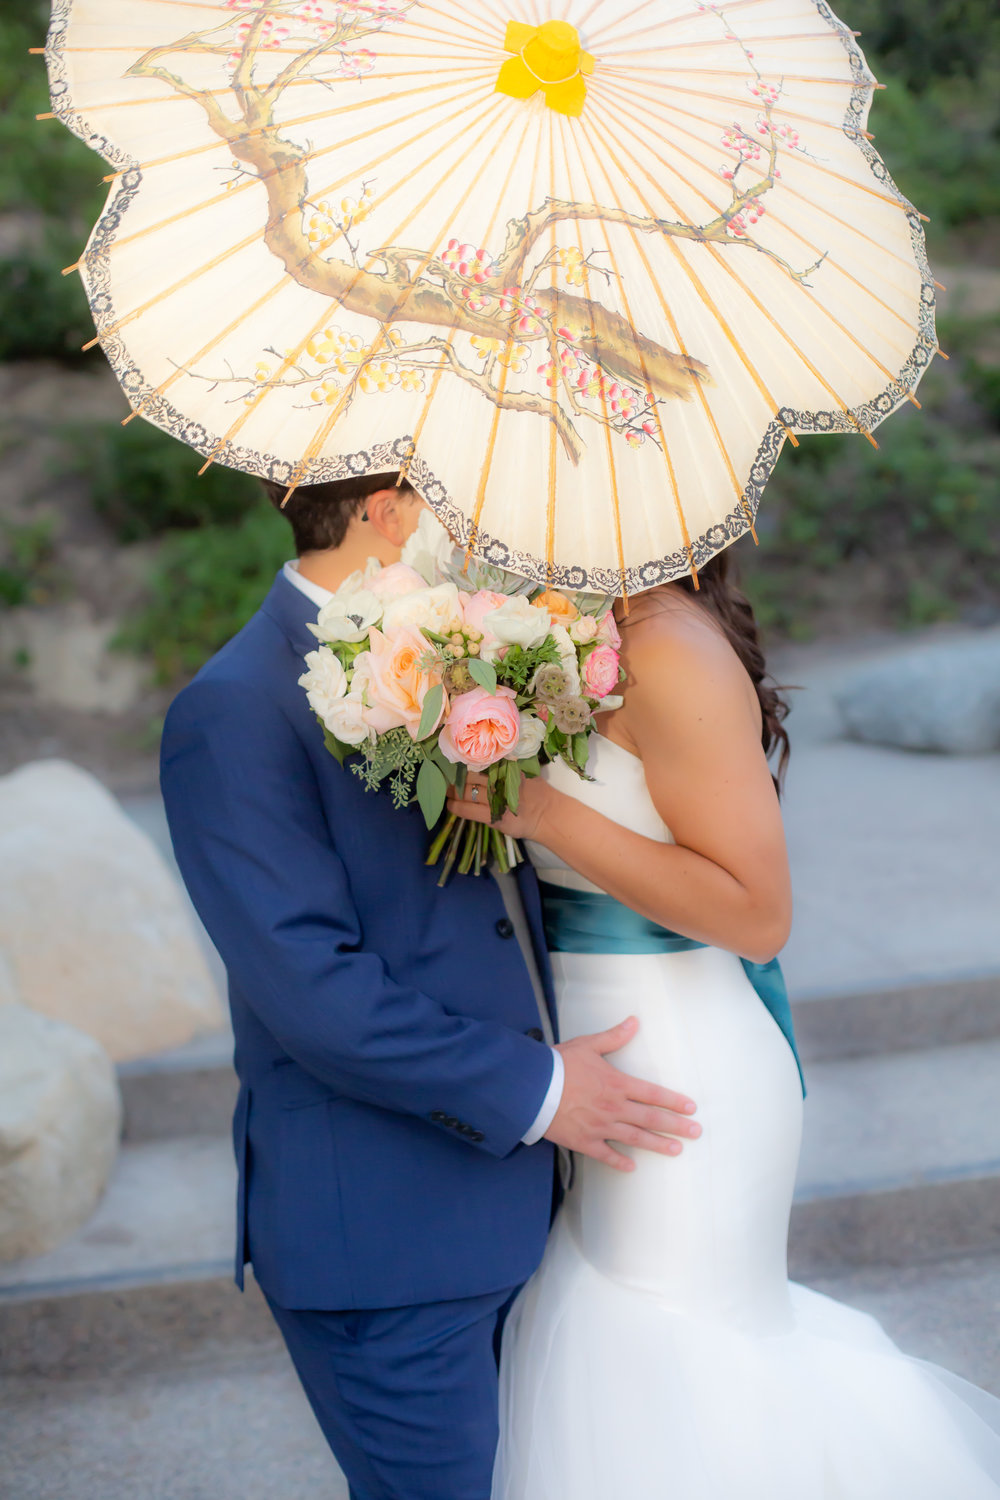 San-Diego-Wedding-Japenese-Friendship-Garden-Carla-David-2018-443.jpg